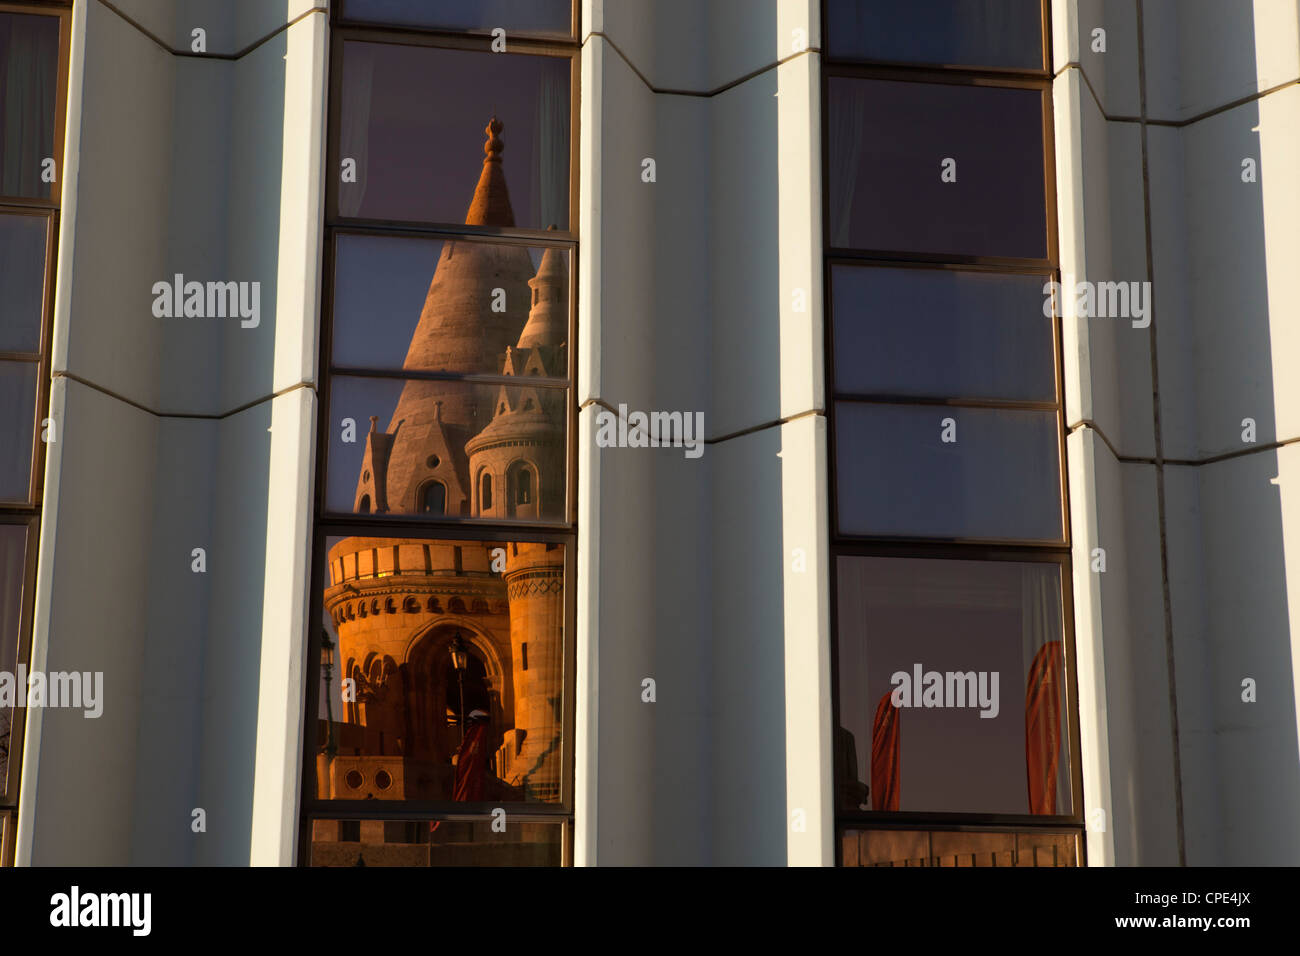 Fishermen's Bastion (Halaszbastya) reflected in windows of Hilton Hotel, Buda, Budapest, Hungary, Europe - Stock Image